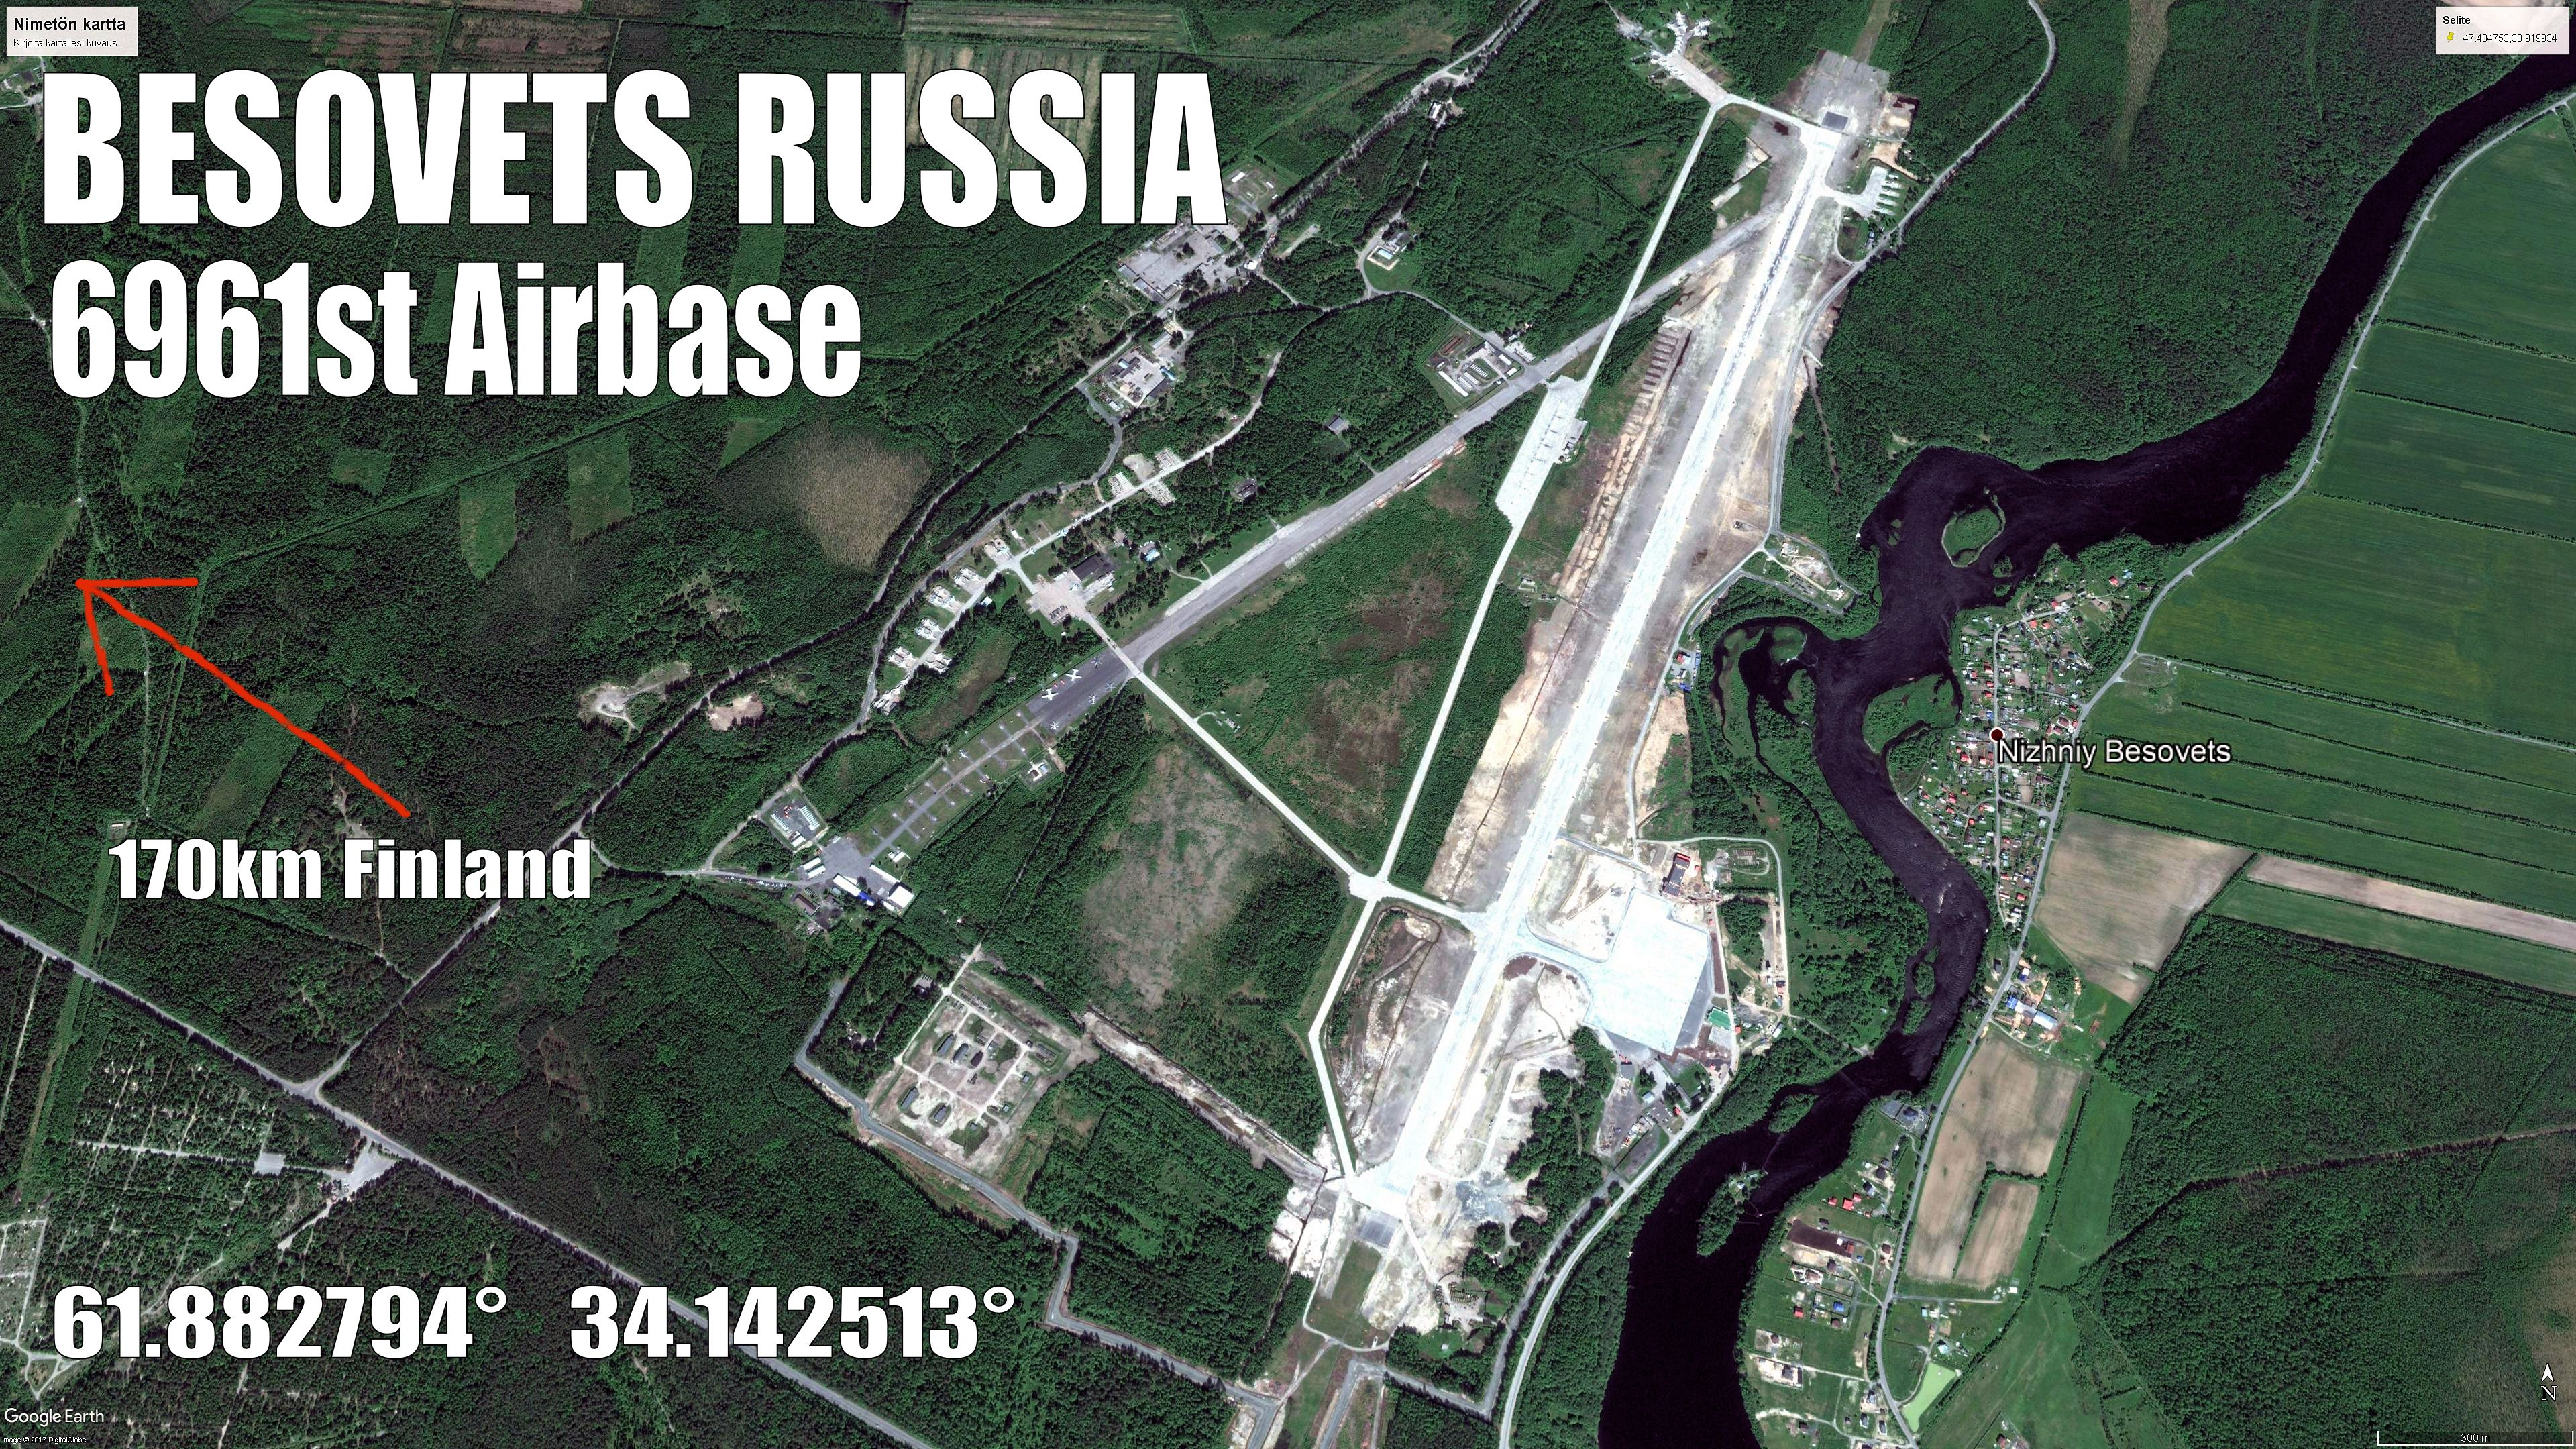 2015 Map Of Russia%0A Besovets     st Air Base Russian AF at Carelia  Petrozavodsk  Petroskoi    This AB